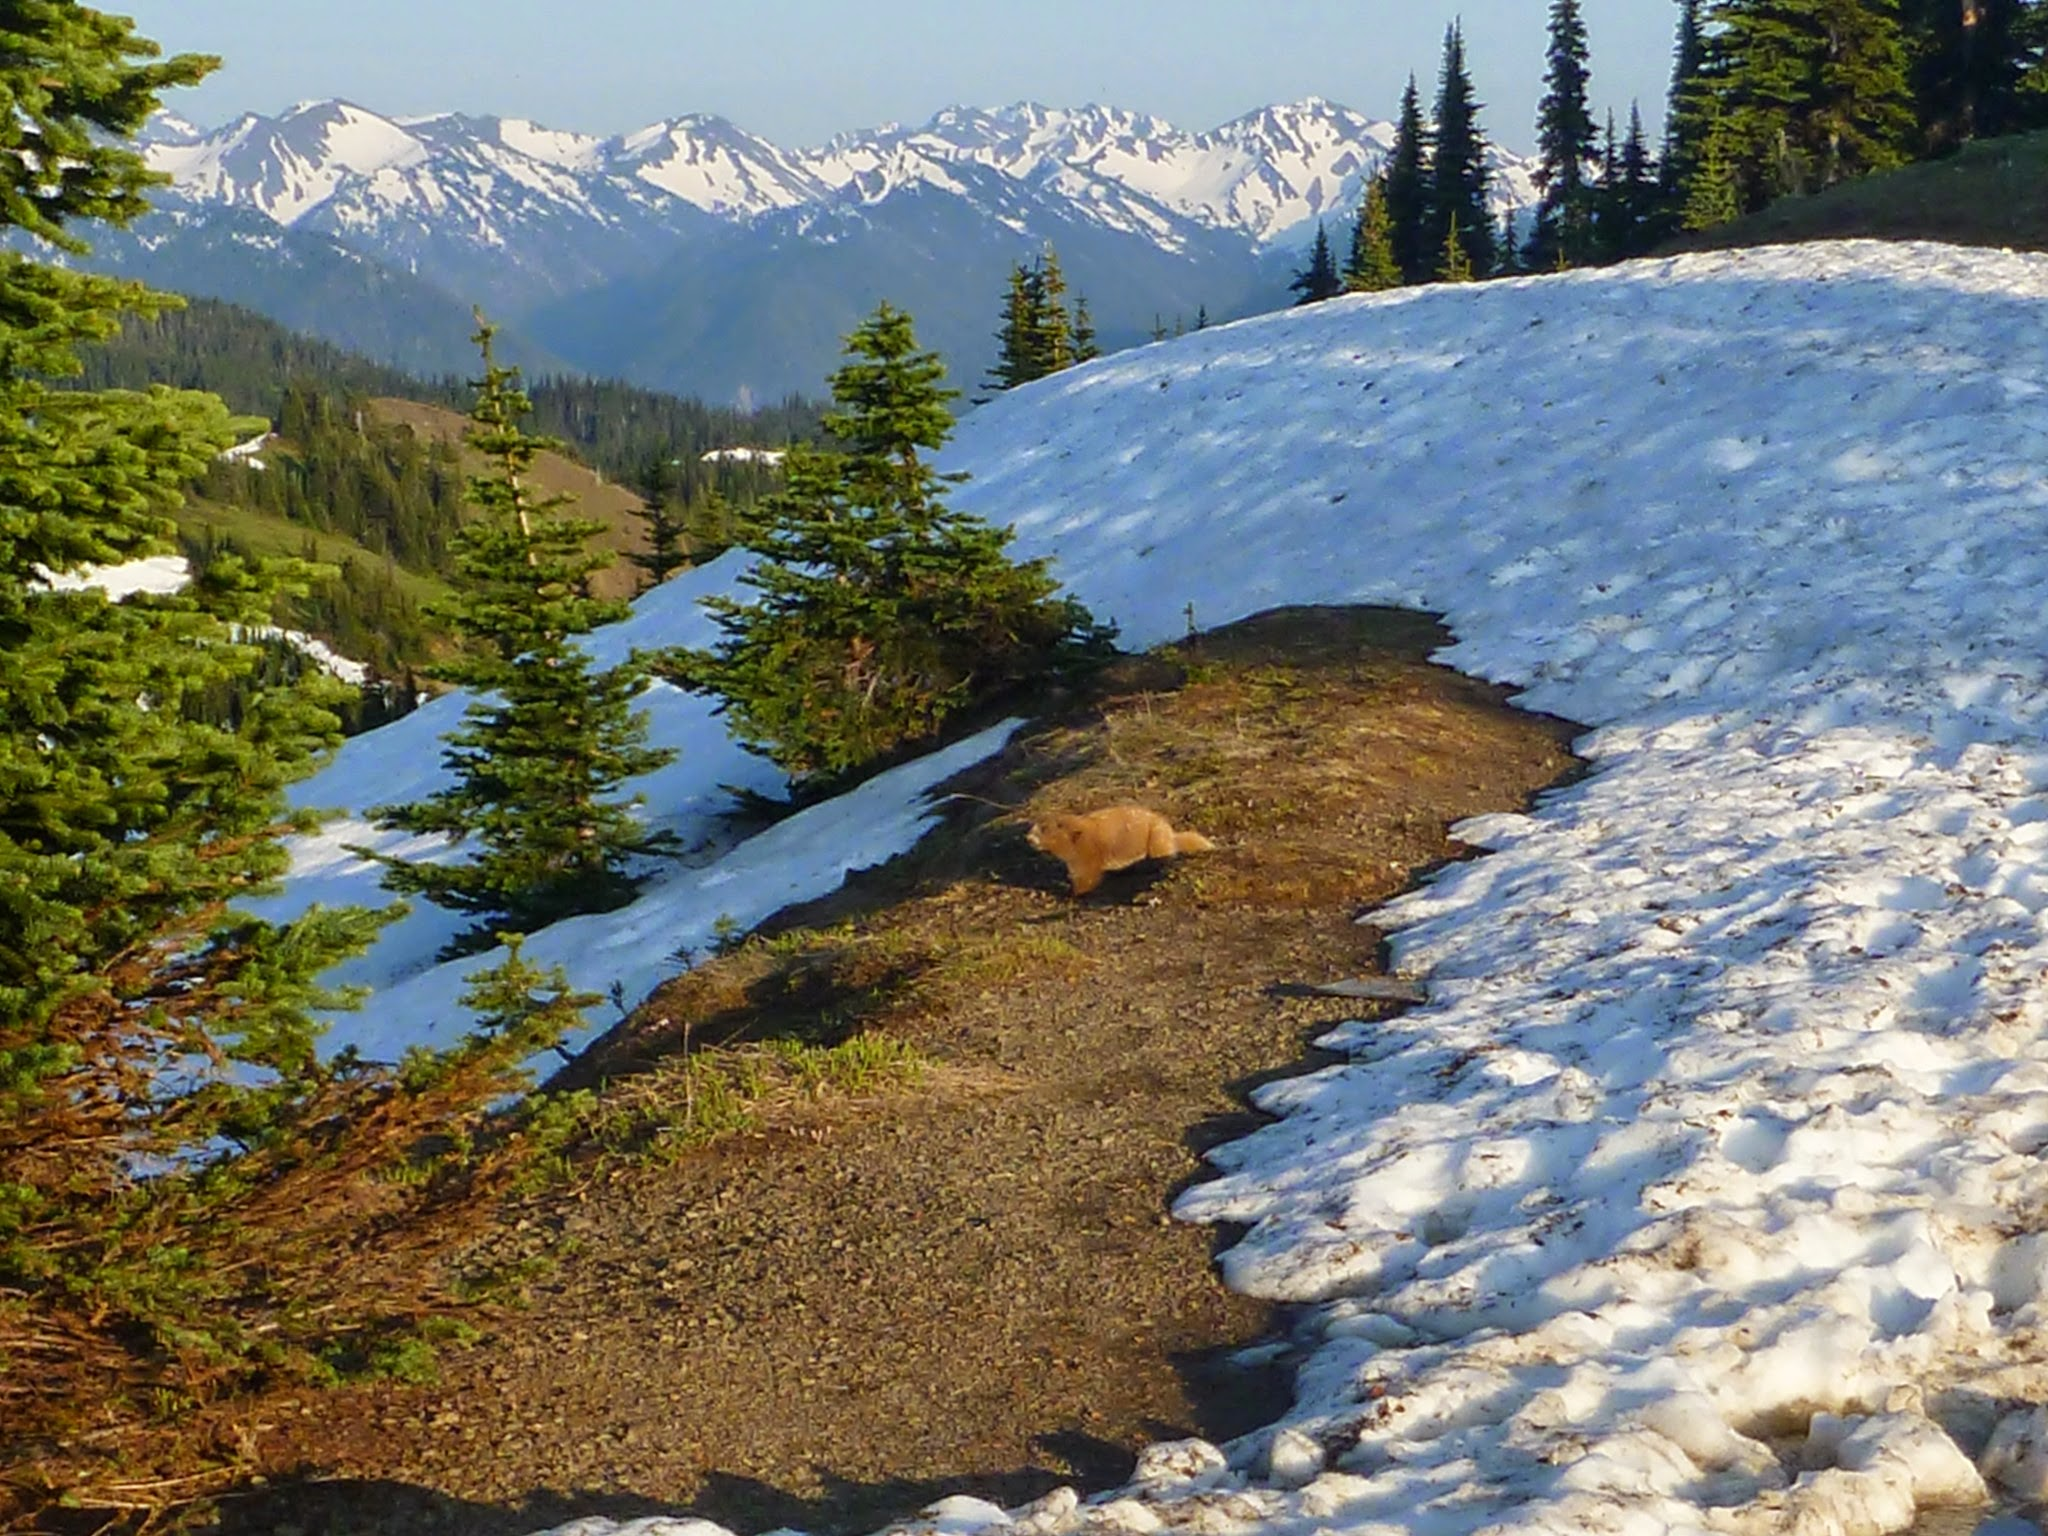 Hurricane Ridge is a good activity for a weekend in Port Angeles any time of year. Here in early summer the deep snow is melting and an Olympic Marmot can be seen exploring. There are high snowcapped mountains in the distance and evergreen trees